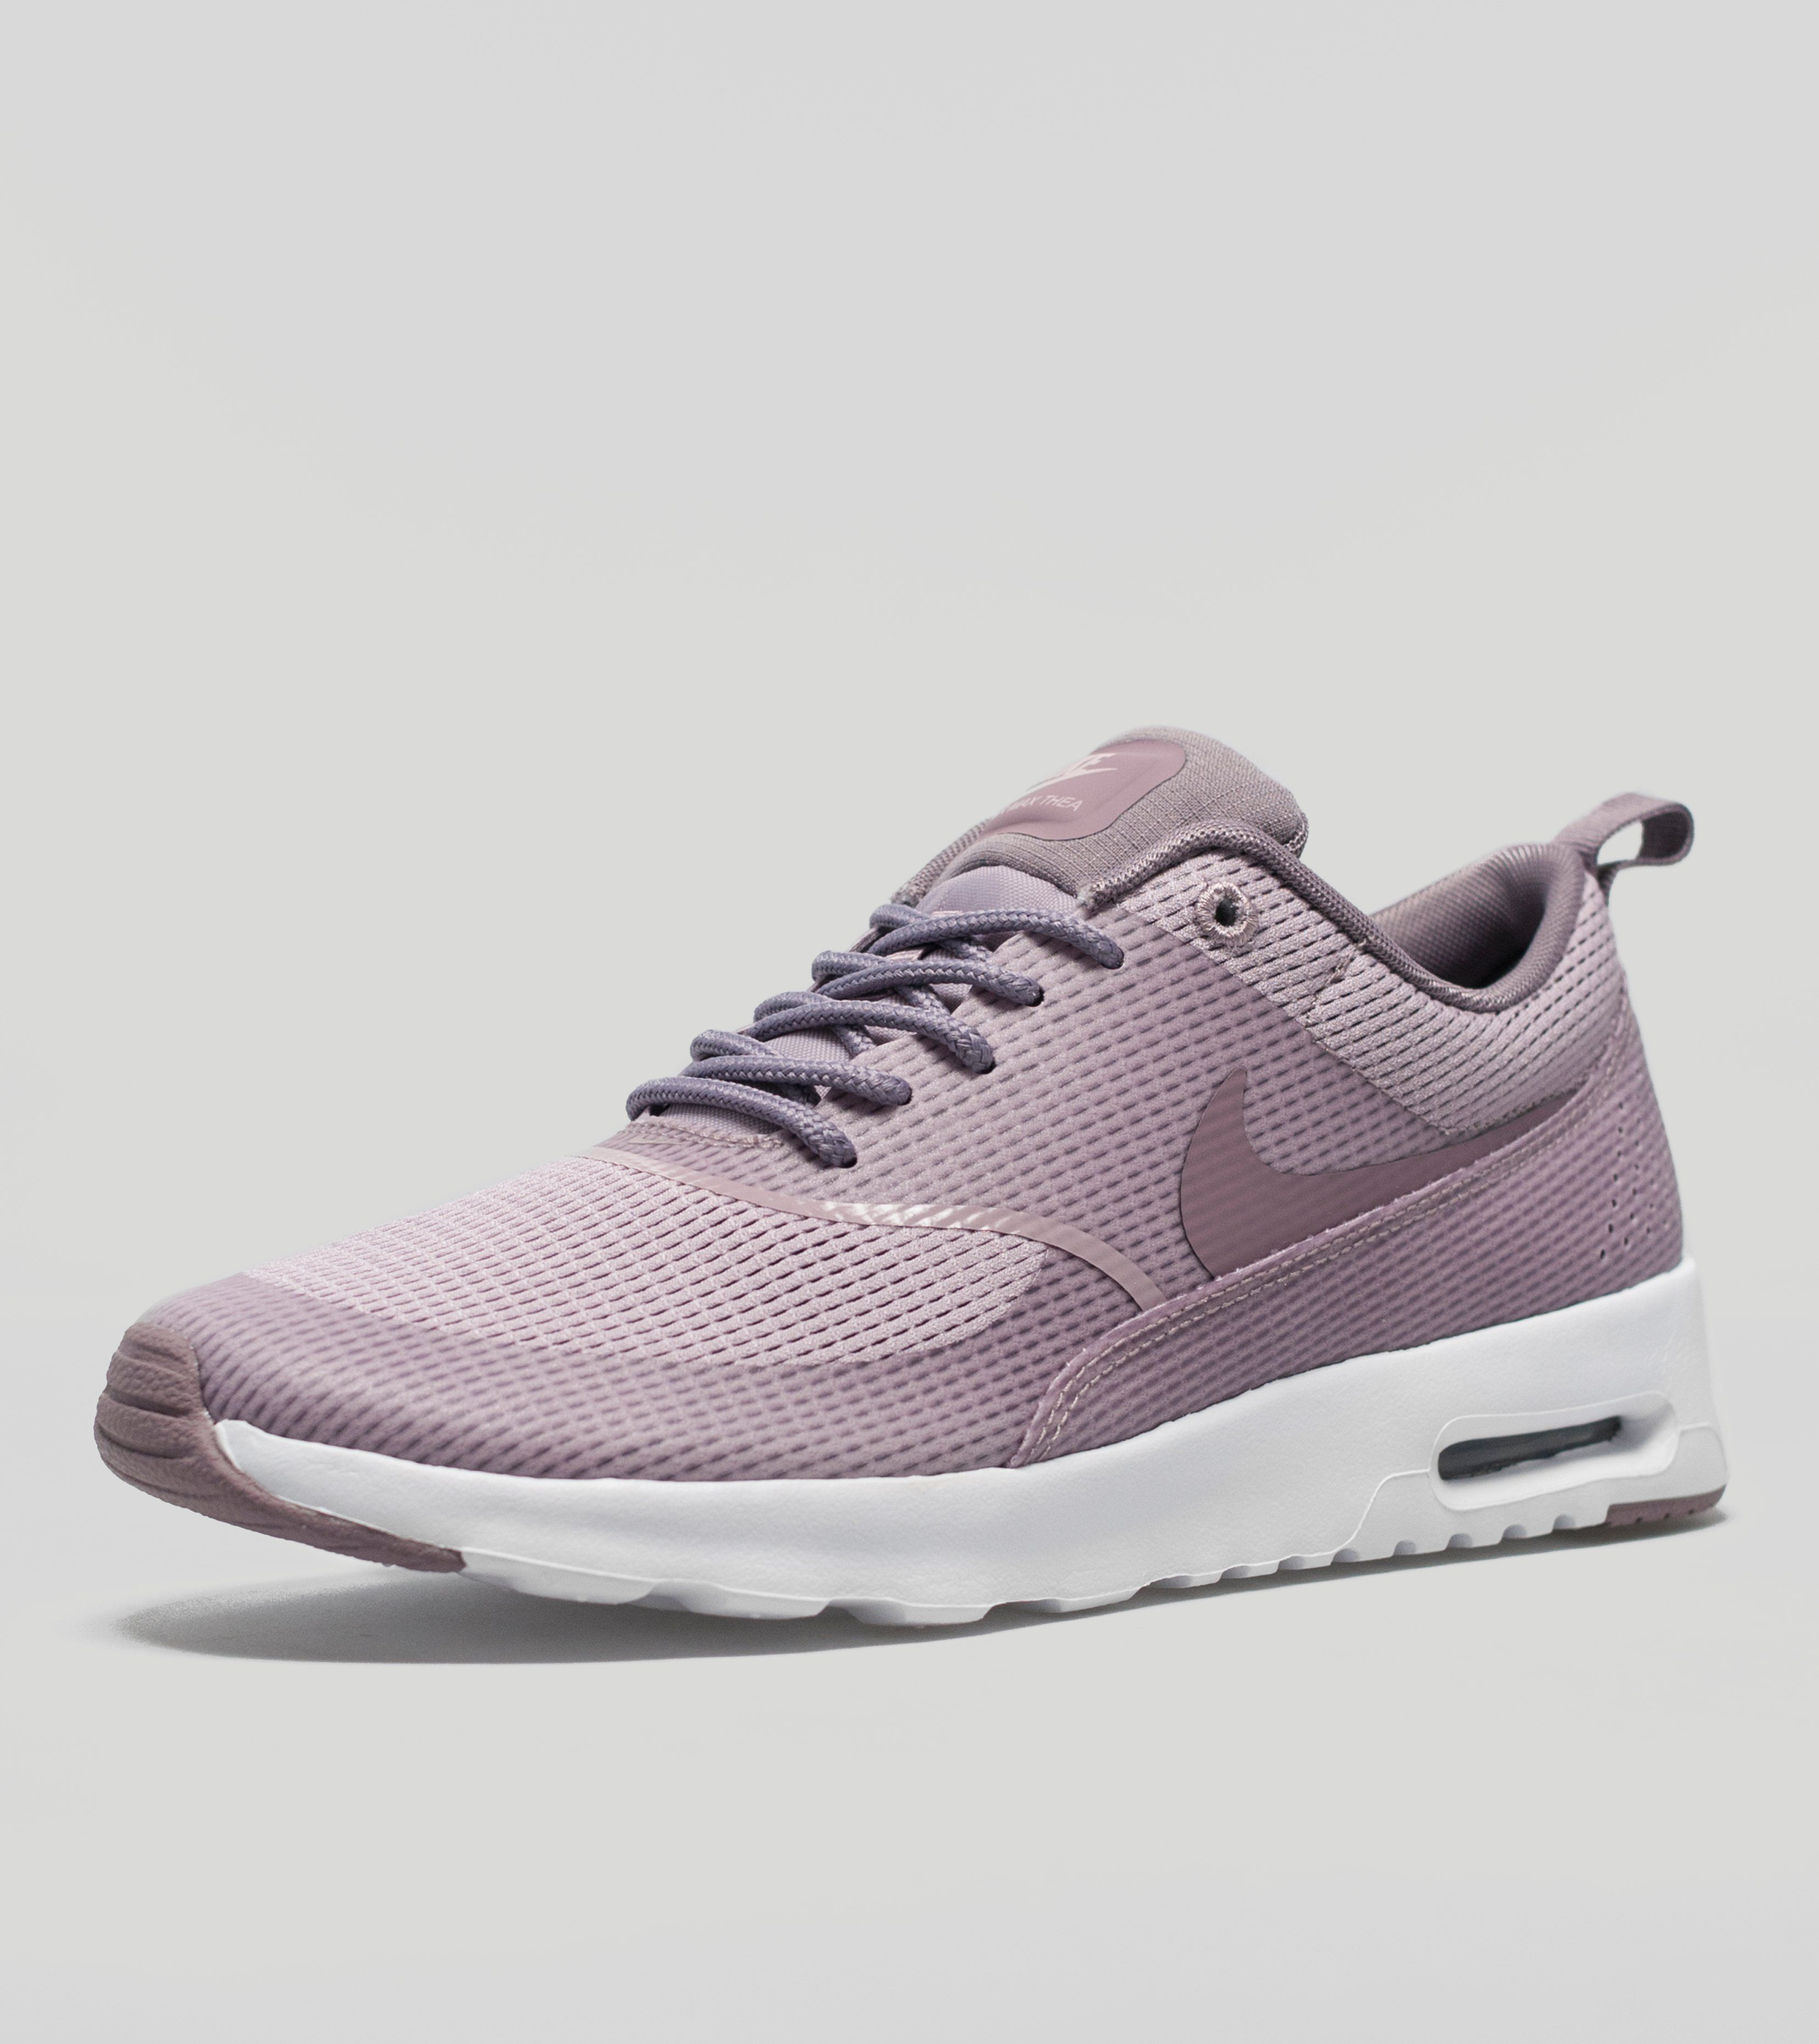 nike air max thea textile women 39 s size. Black Bedroom Furniture Sets. Home Design Ideas